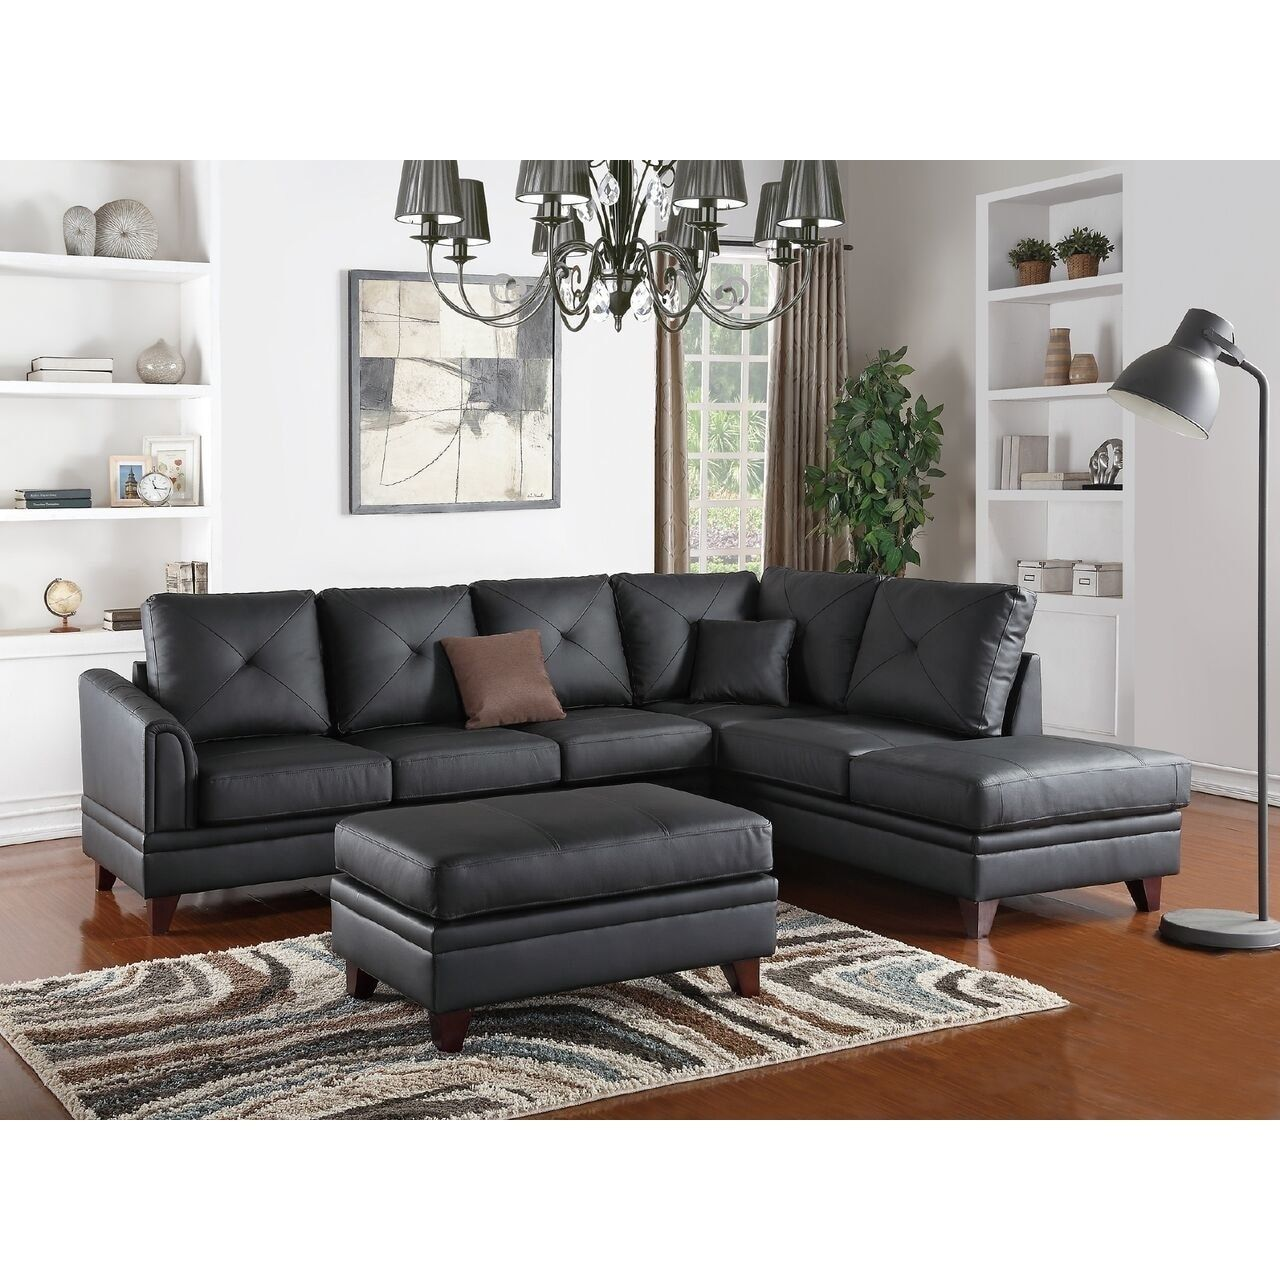 black leather living room furniture sets%0A Poundex Hrazdan Sectional Sofa Upholstered in Genuine Leather  Brown